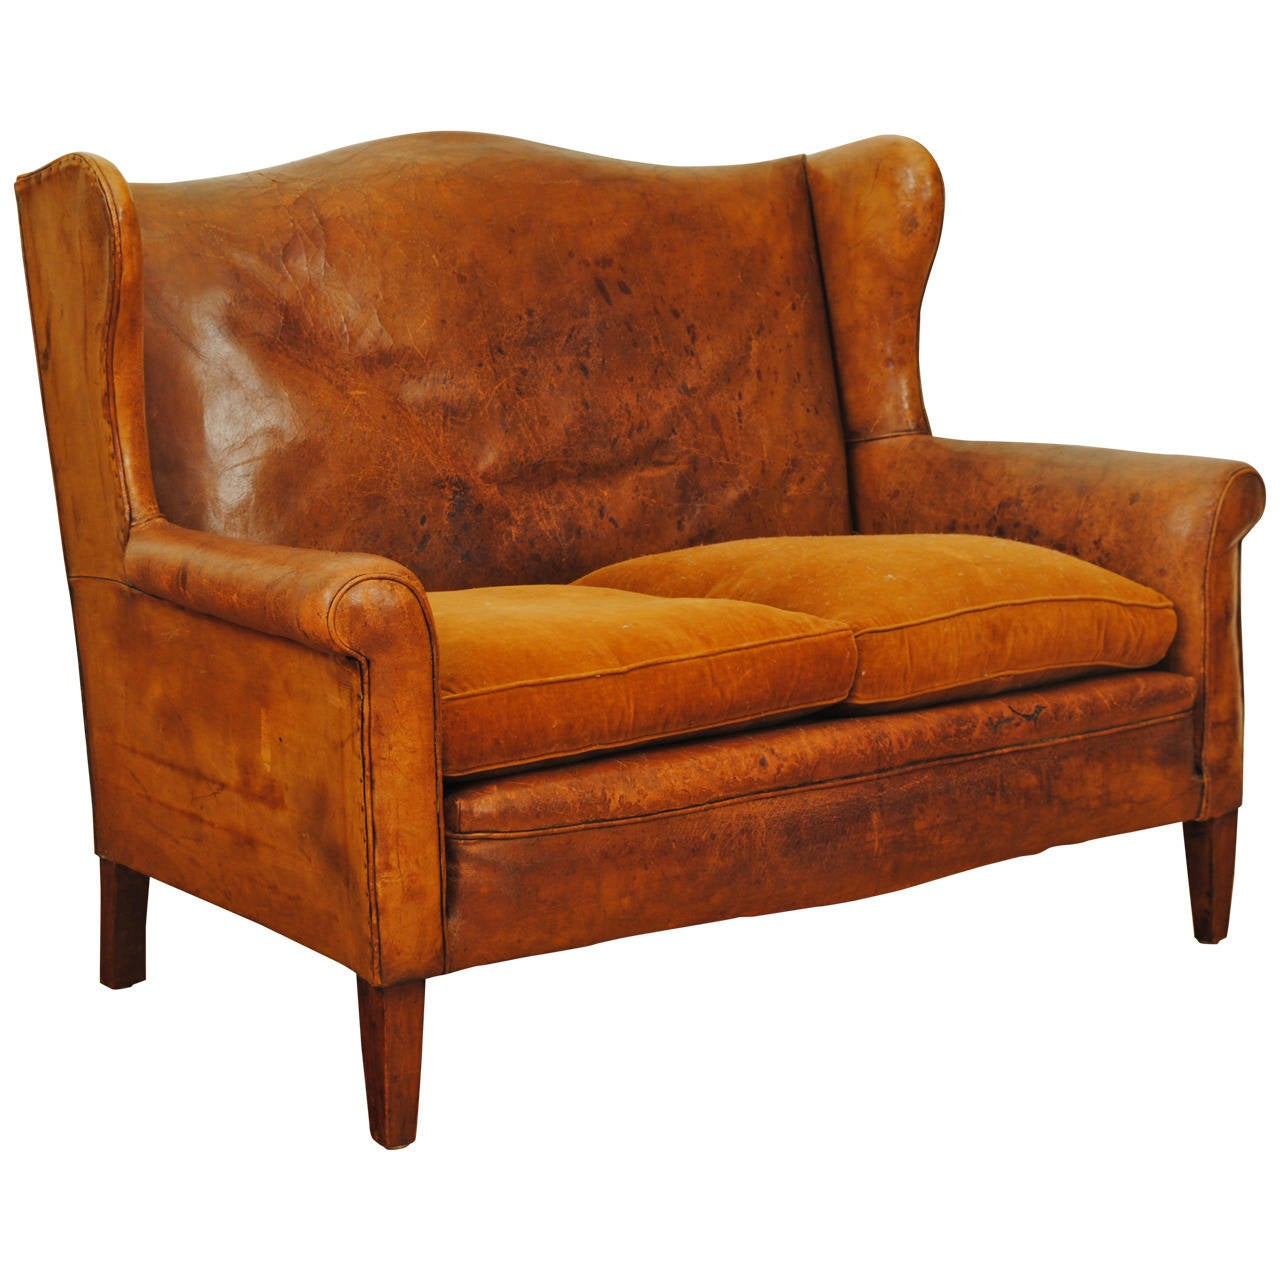 French art deco leather and velvet upholstered canap in for Canape leather sofa